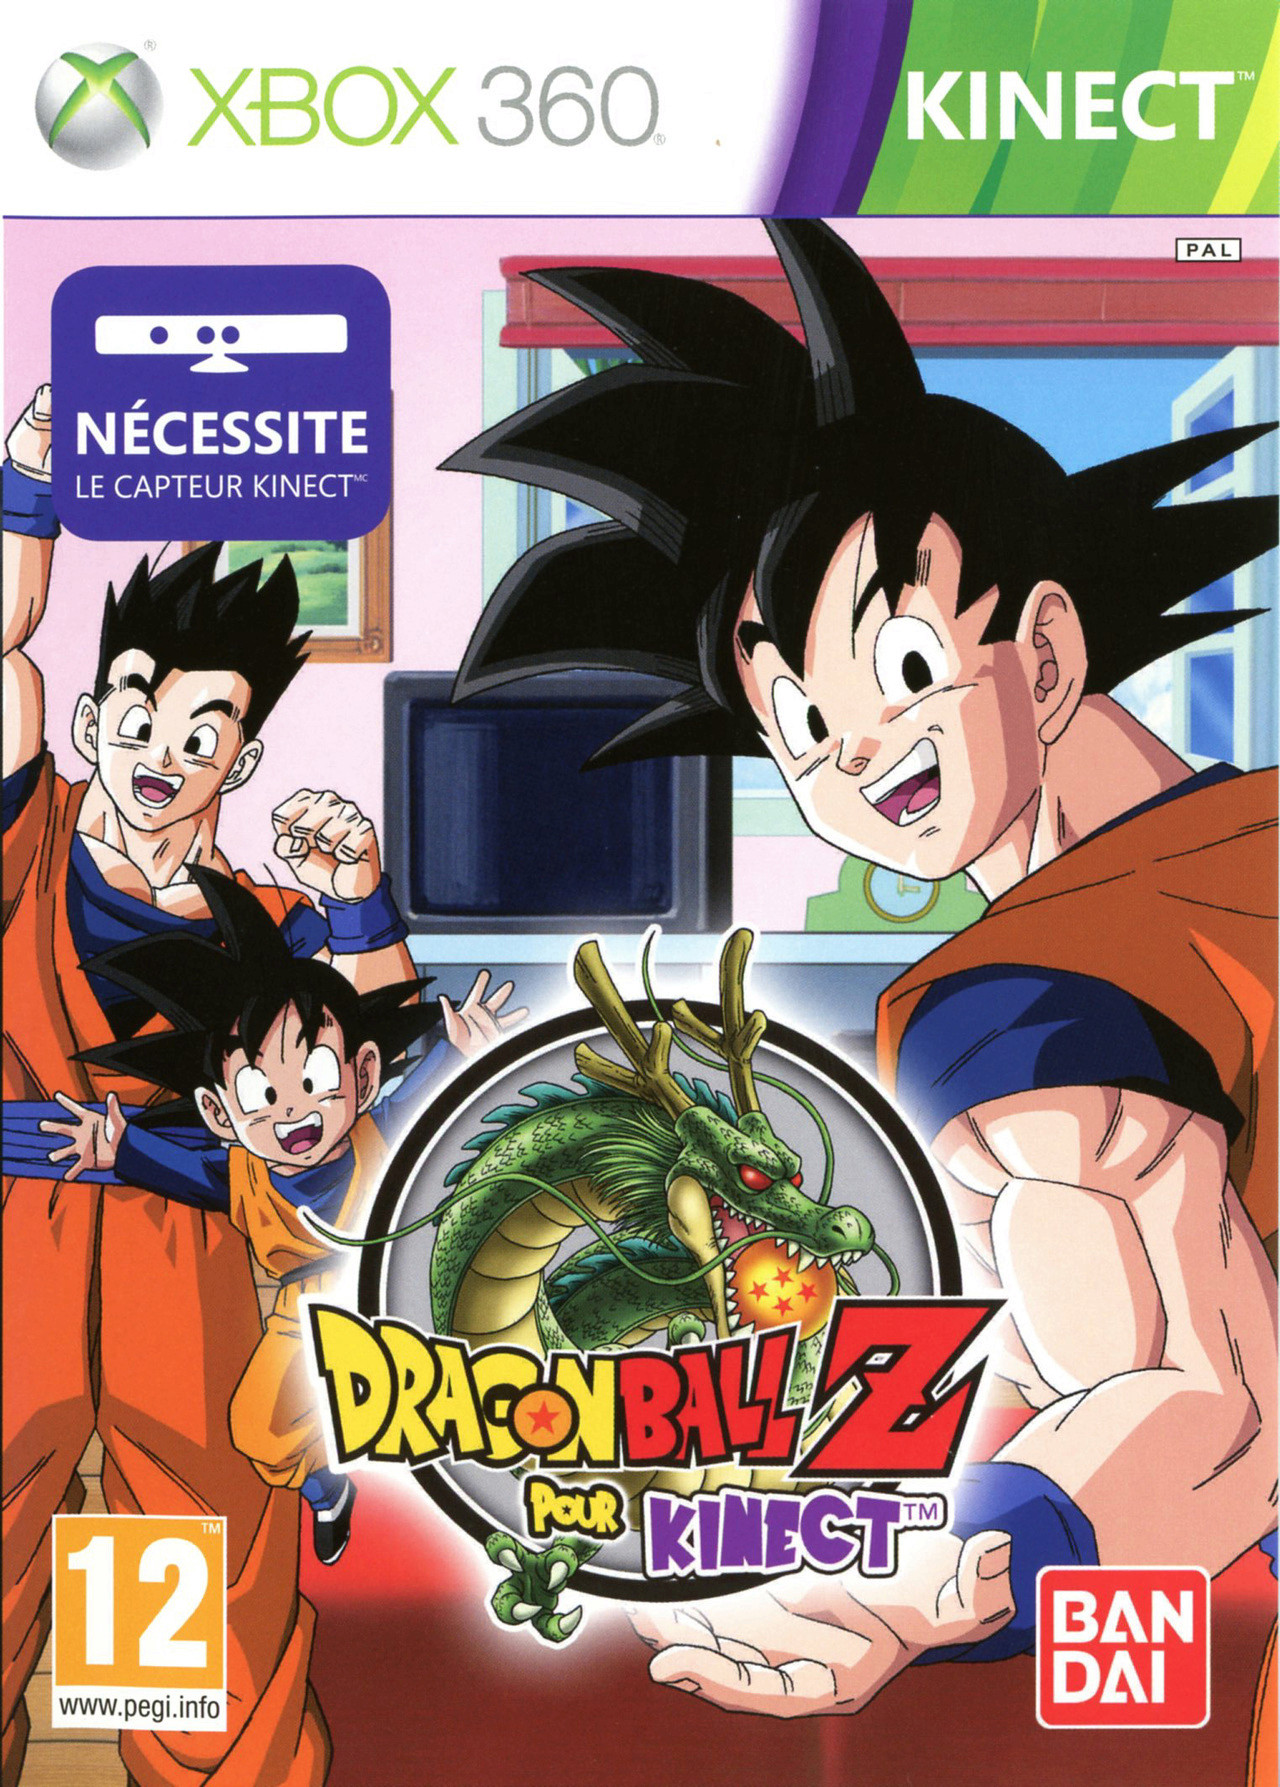 [MANGA/ANIME] Dragon Ball Z Jaquet17